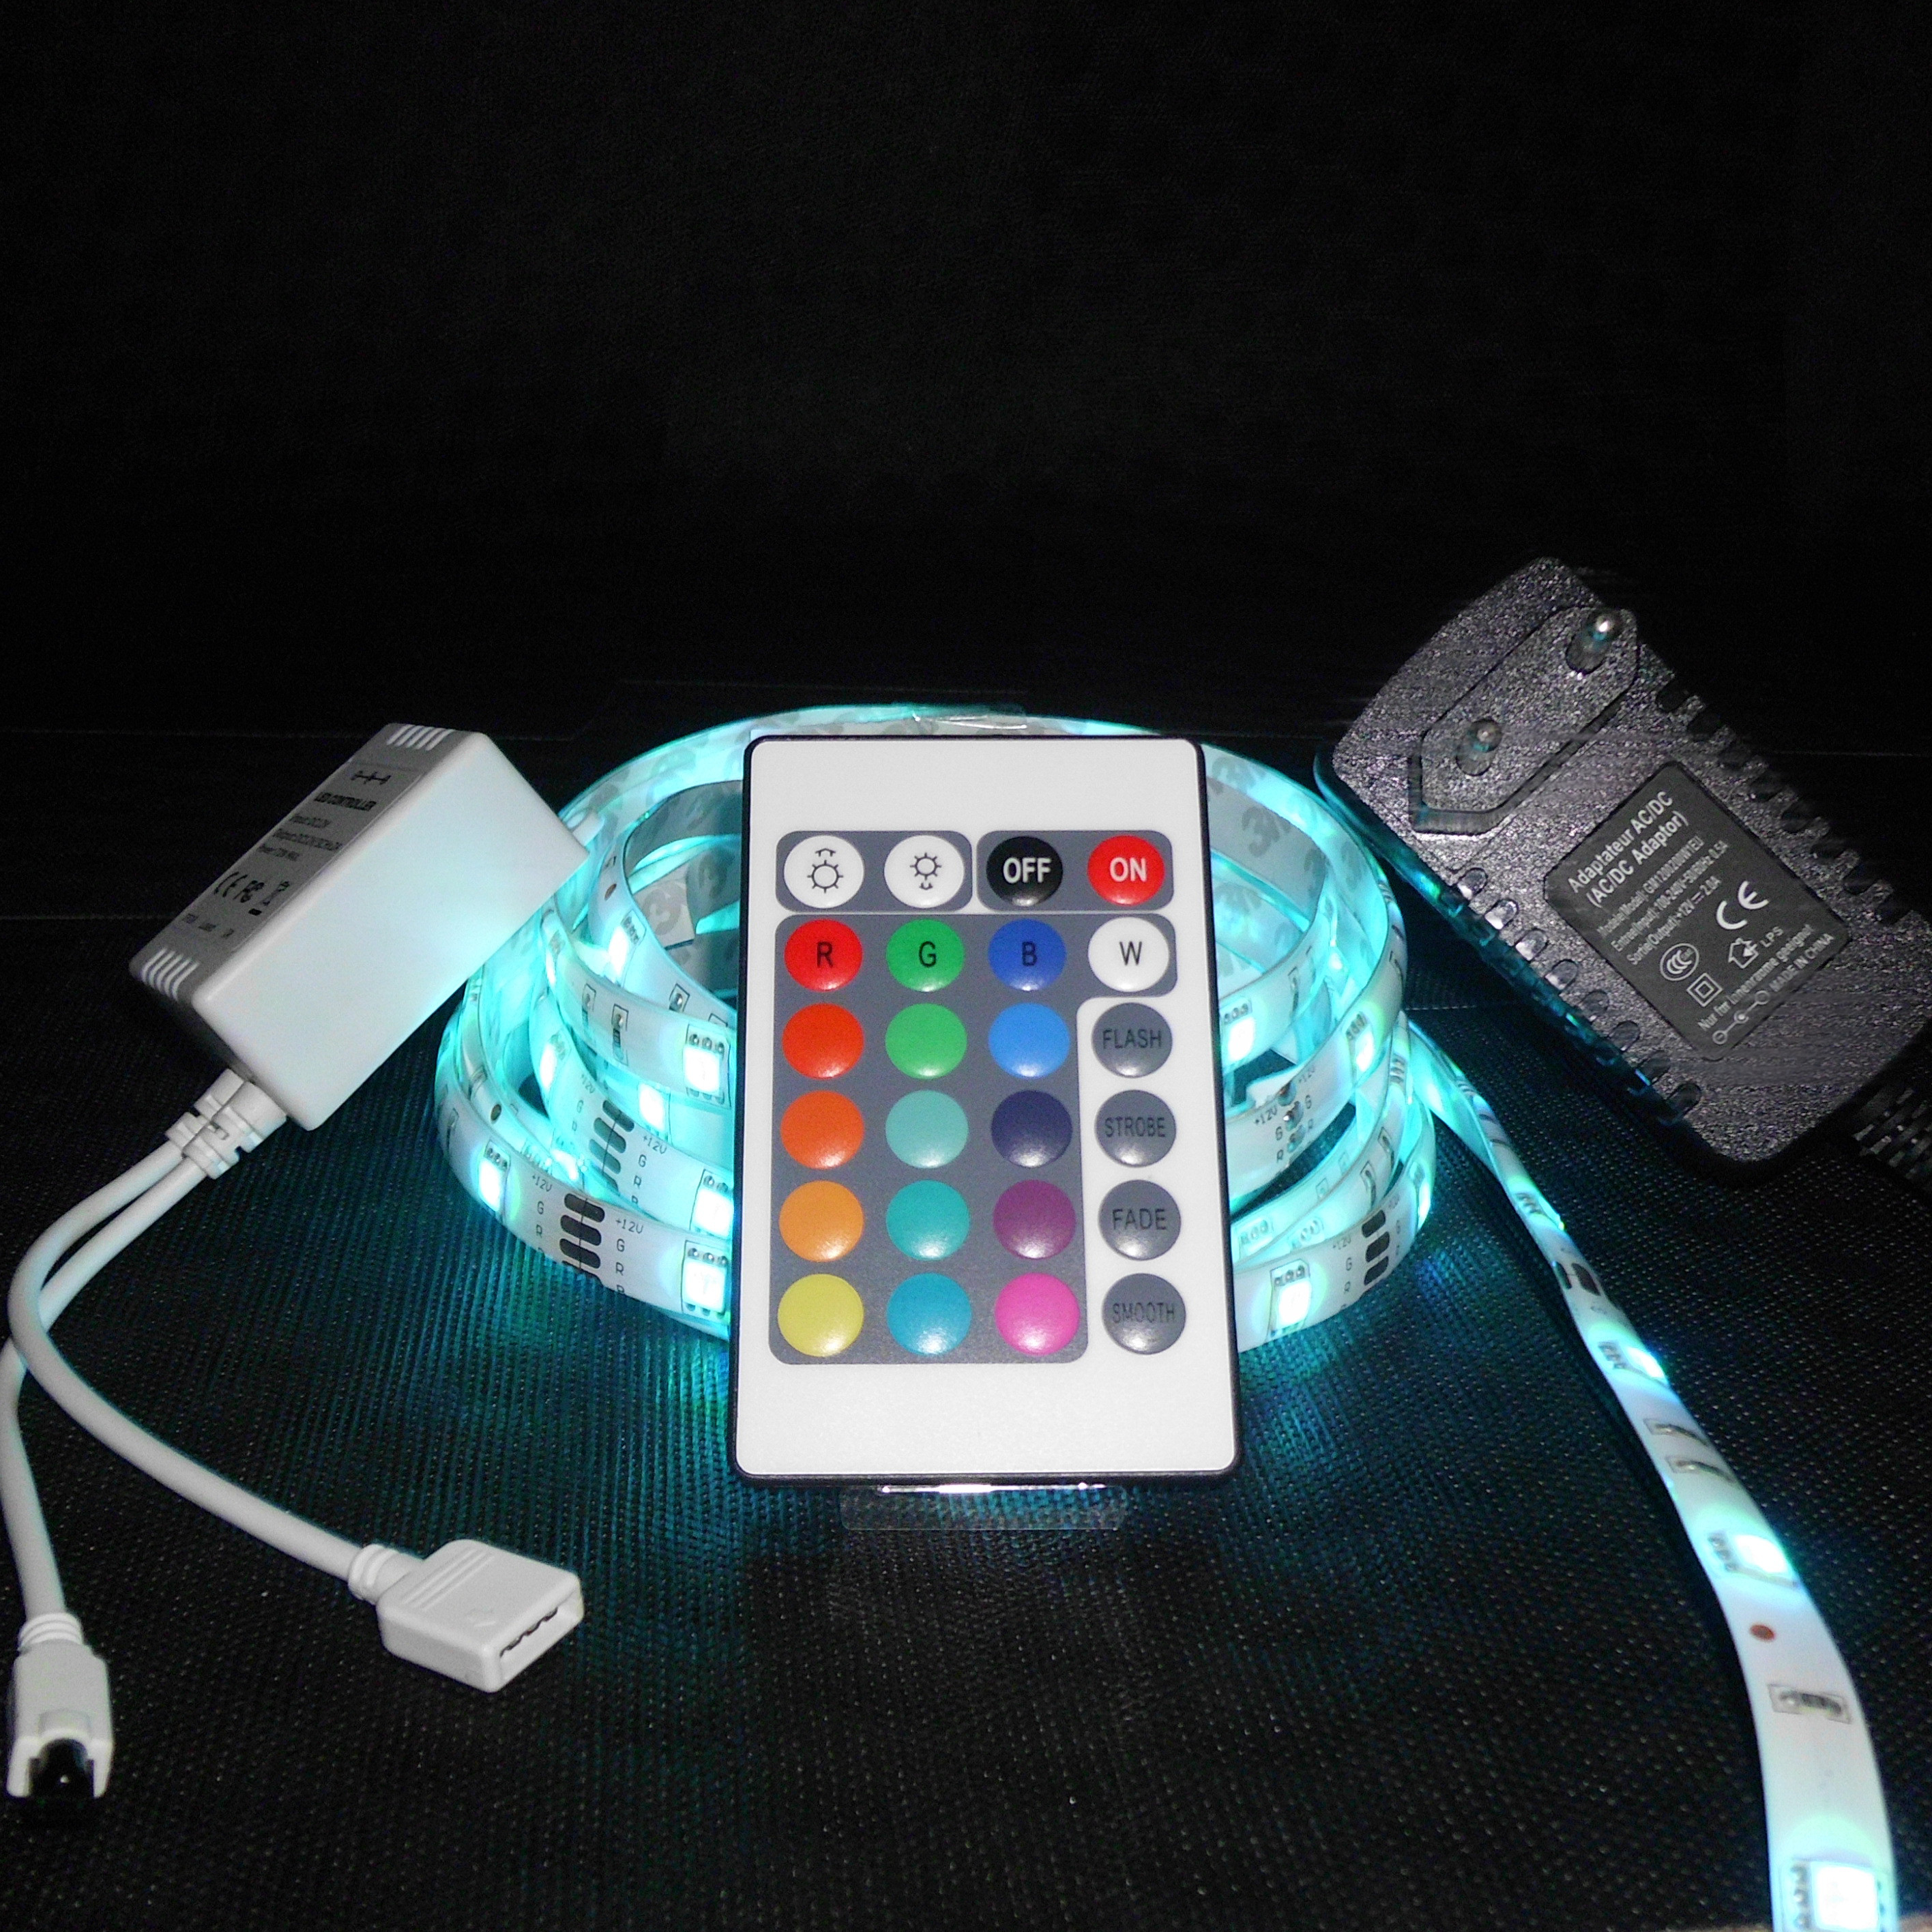 led lichtband 3 meter lang 5050 rgb fernbedienung netzteil controller ebay. Black Bedroom Furniture Sets. Home Design Ideas